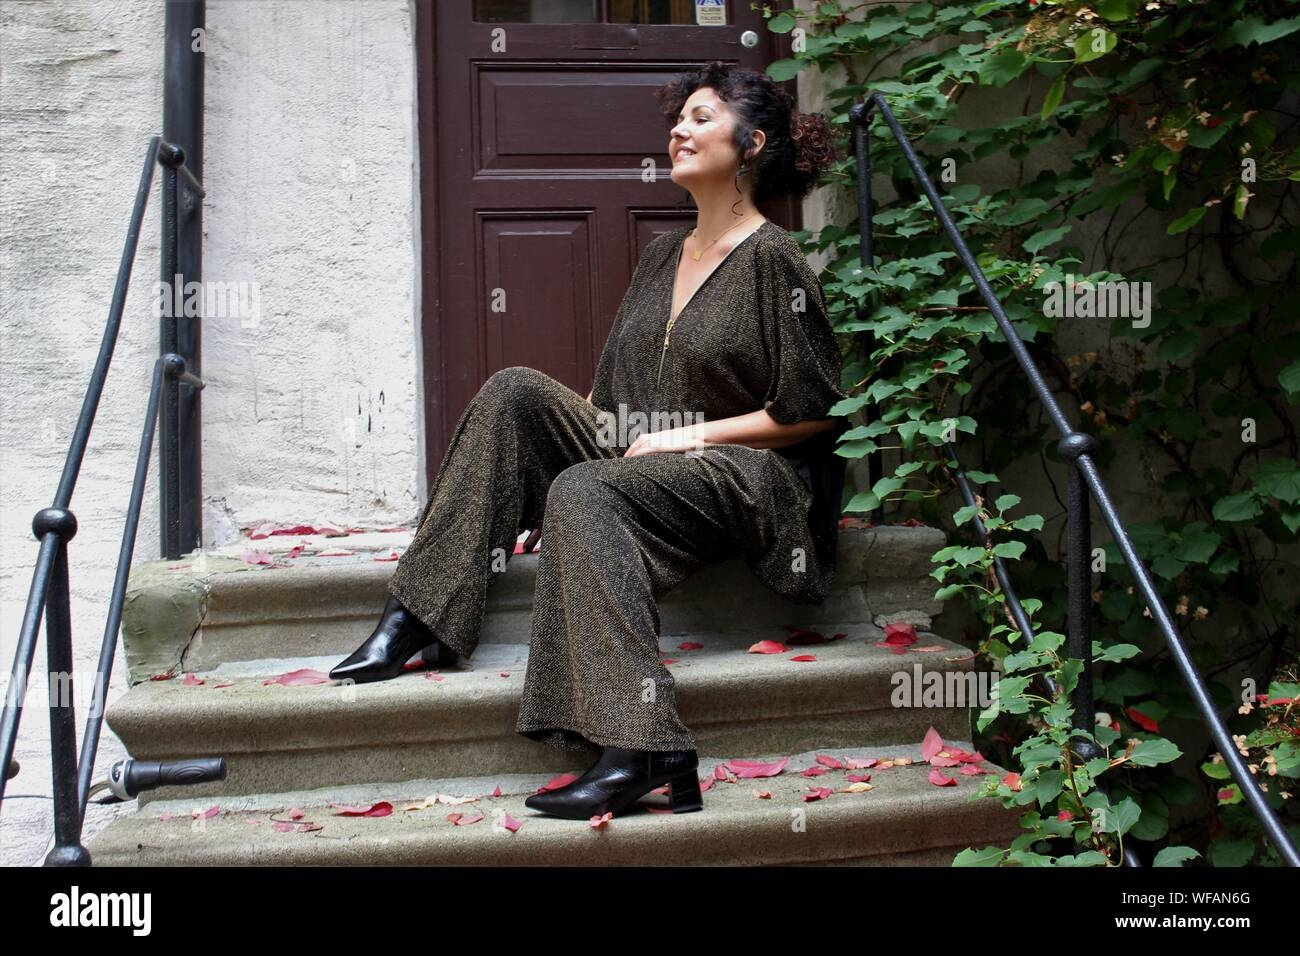 M*T*R* Woman Sitting On Steps Outside House Stock Photo Alamy | Outside Steps For House | Front Door | Entryway | Decorative | Ranch Style House | Beautiful